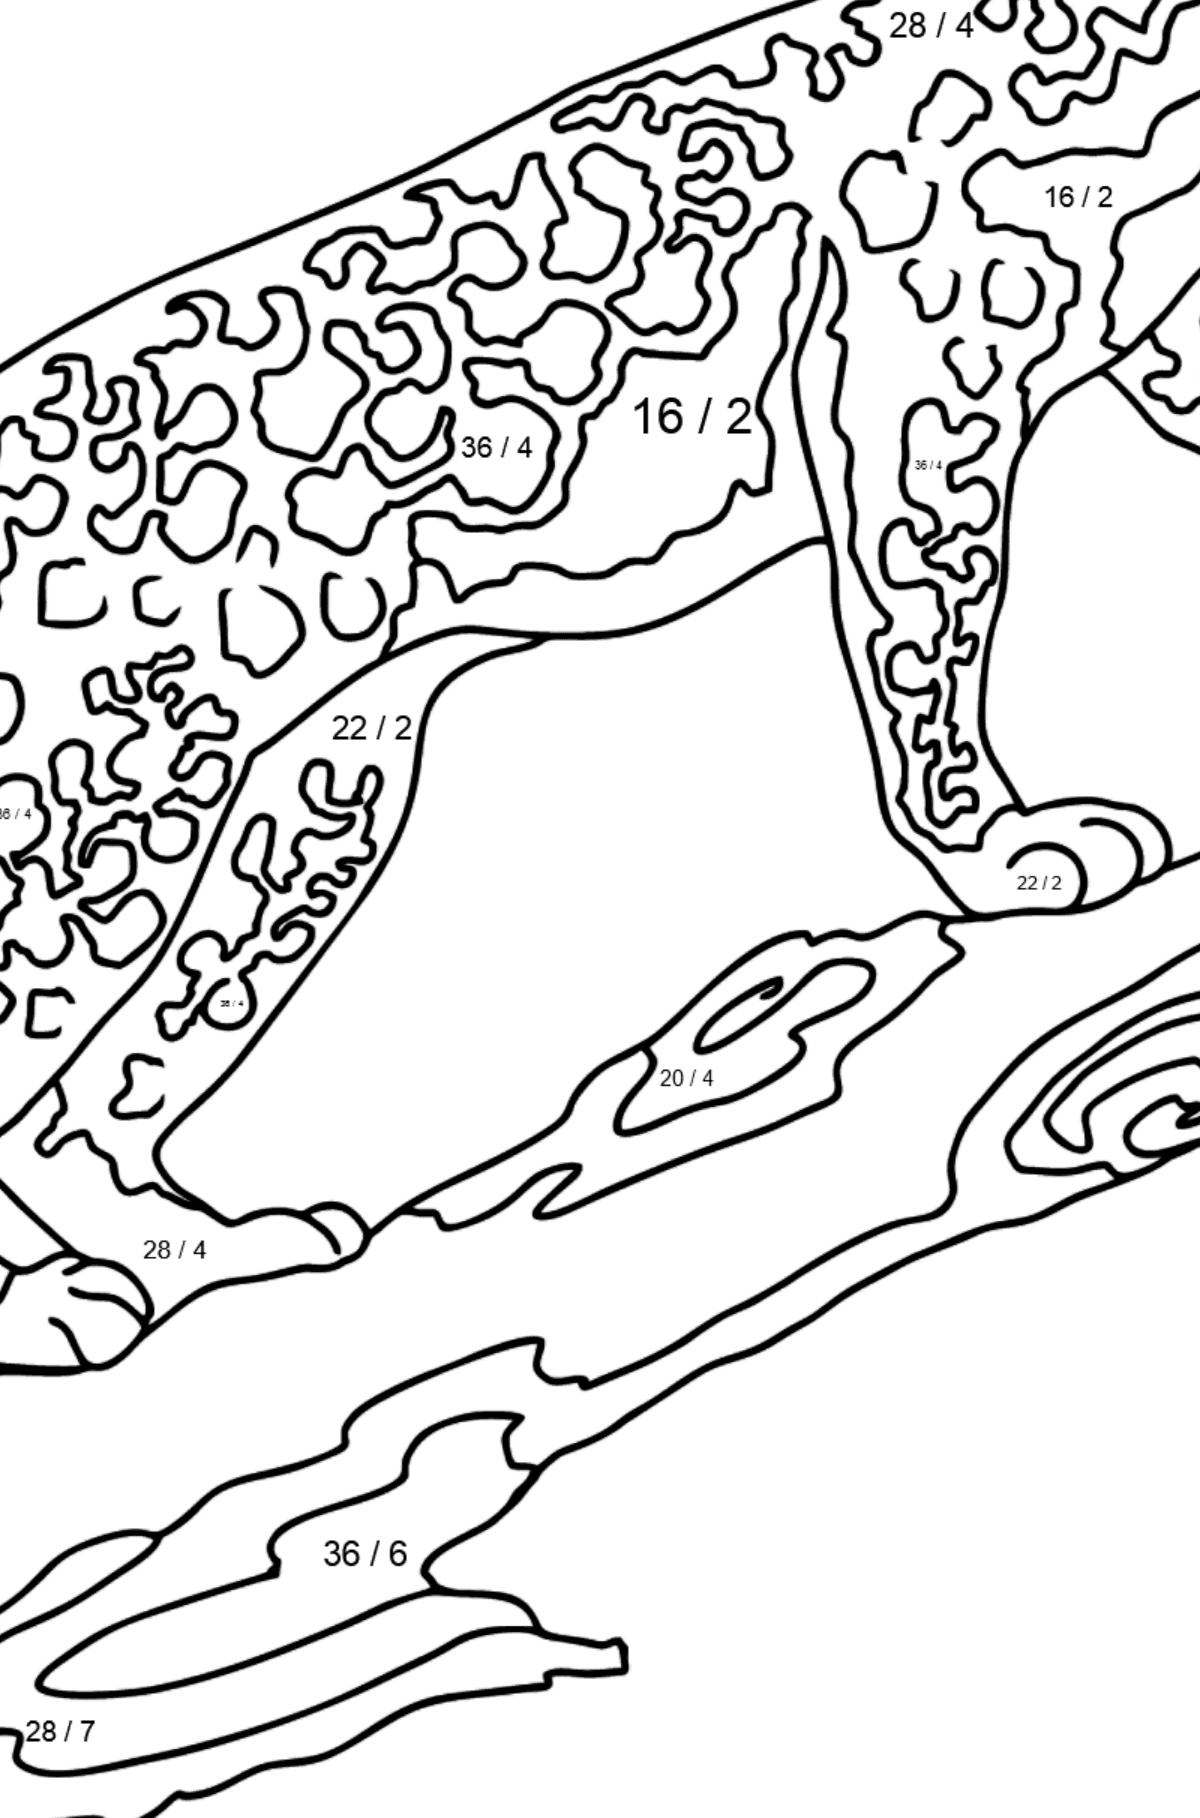 Coloring Page - A Leopard on a Branch - Math Coloring - Division for Kids